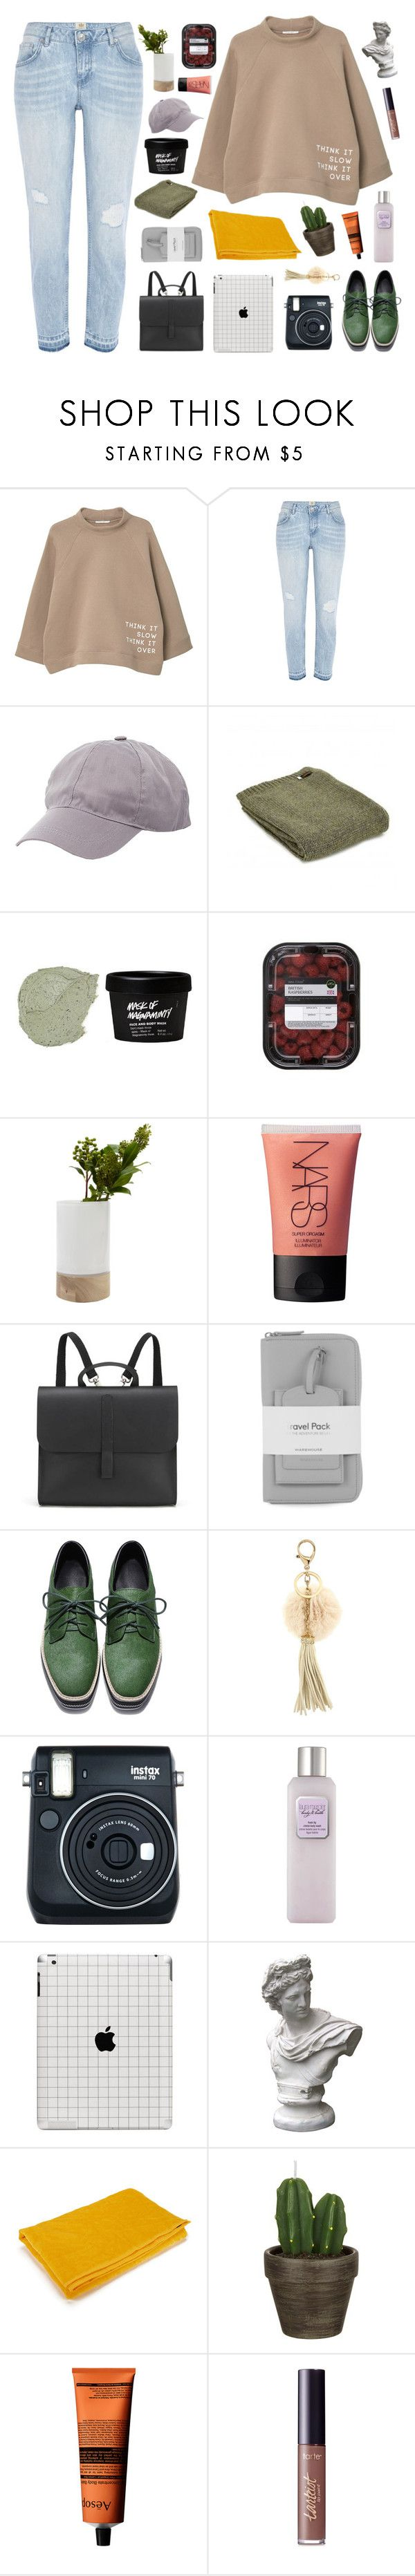 """""""the polaroids ❁ collab w/ nicole!"""" by frostedfingertips ❤ liked on Polyvore featuring MANGO, River Island, Charlotte Russe, Tweedmill, LOTTA, NARS Cosmetics, Danielle Foster, Warehouse, Johnny Loves Rosie and Fuji"""